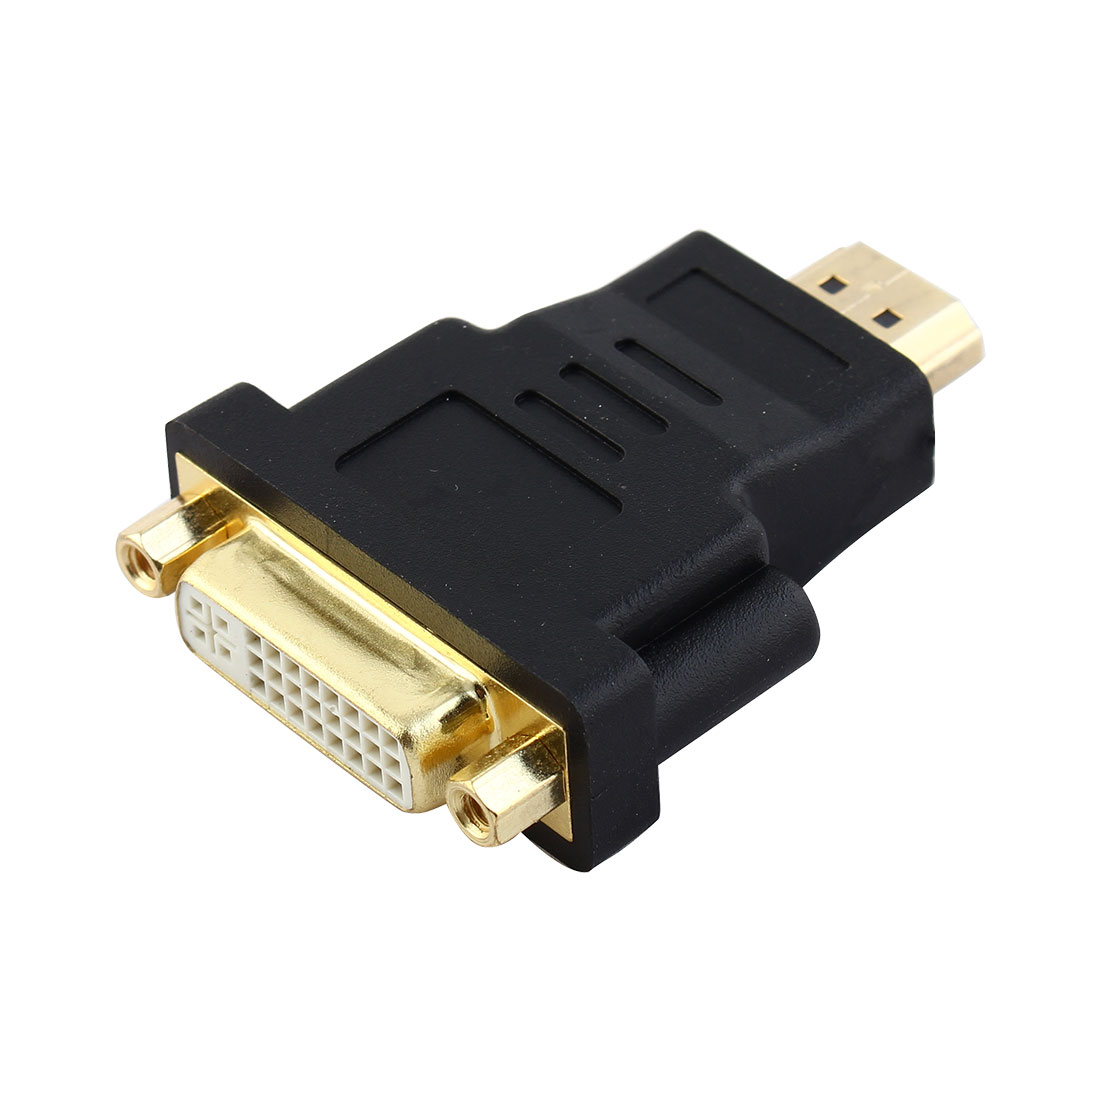 DVI-I Dual Link 24+5 Female to HDMI 19 Pin Male Video Adapter Connector